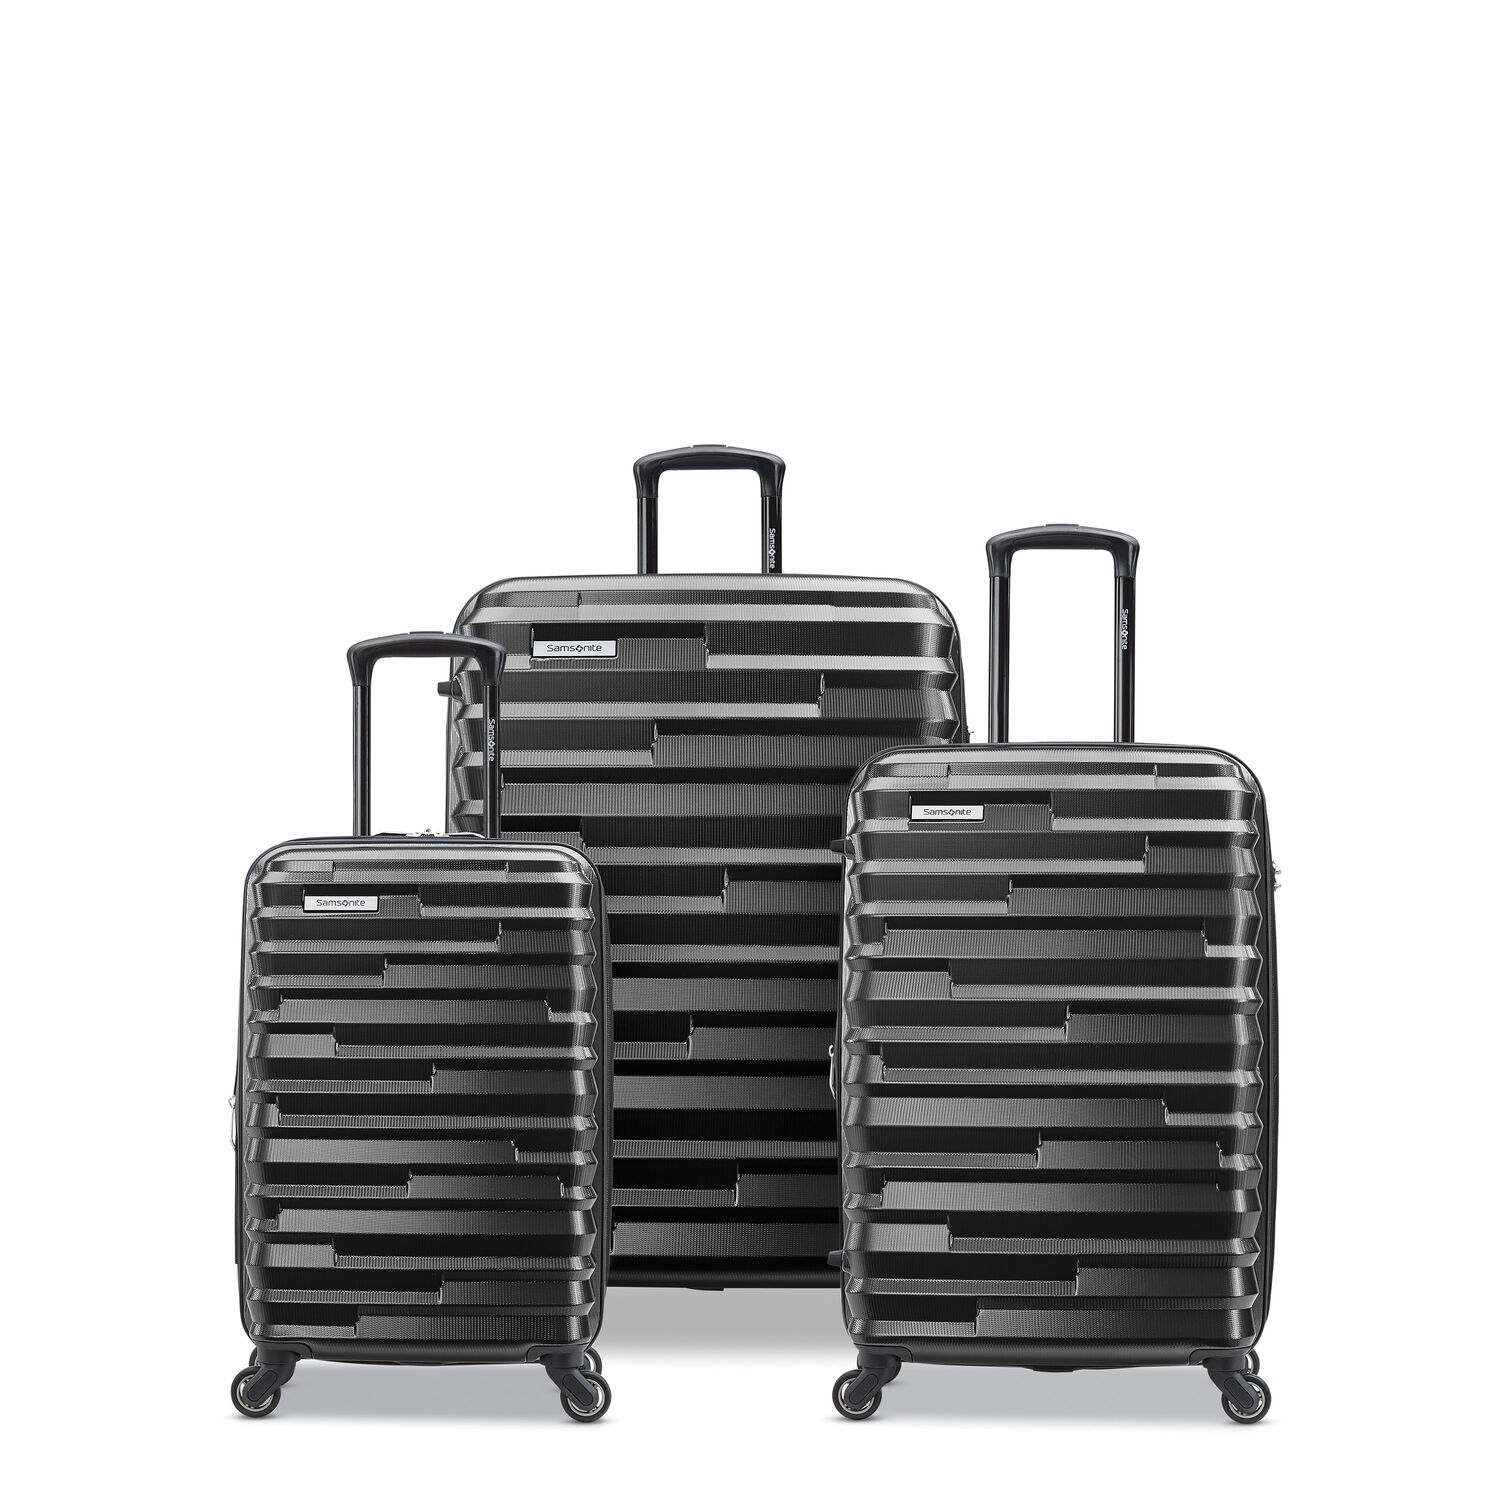 Samsonite Ziplite 4 3 Piece Set (CO/Med/Lrg) in the color Brushed Anthracite.